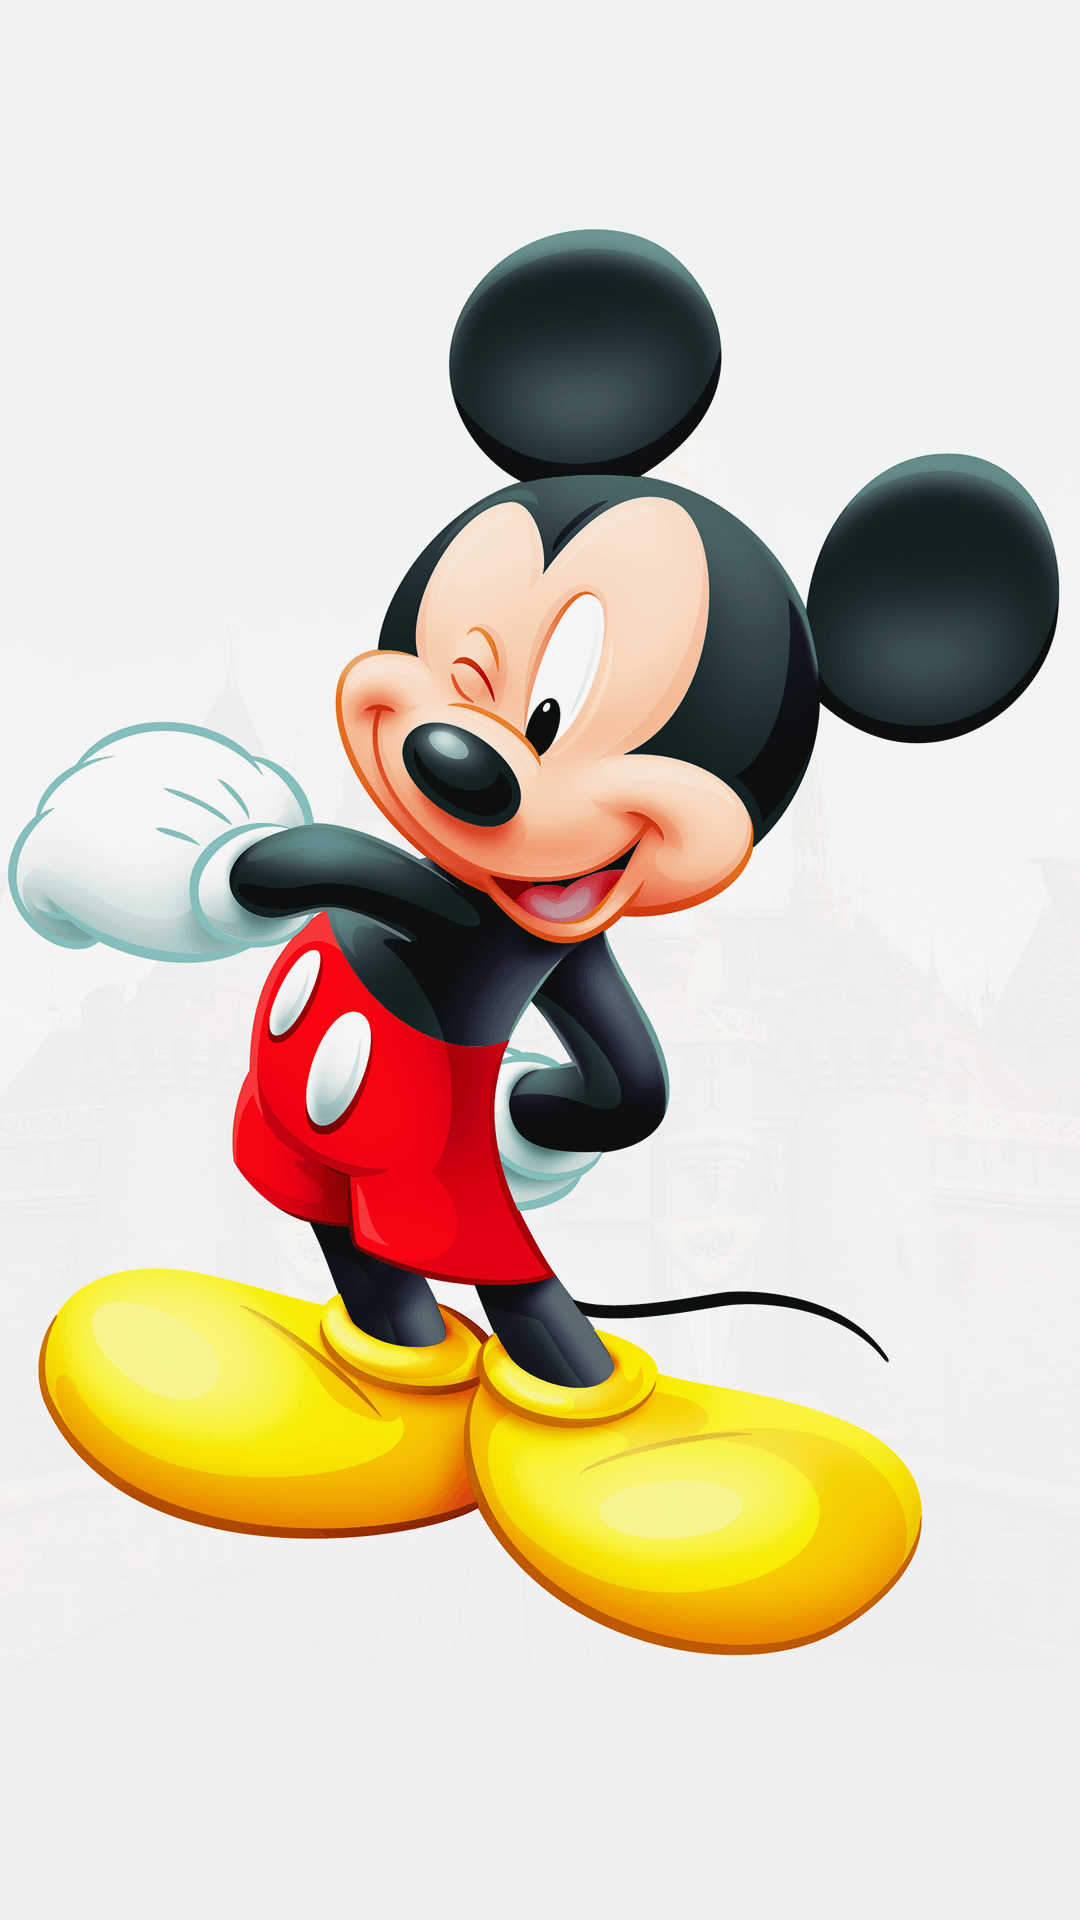 Mickey Mouse Wallpaper For Android posted by Ryan Thompson